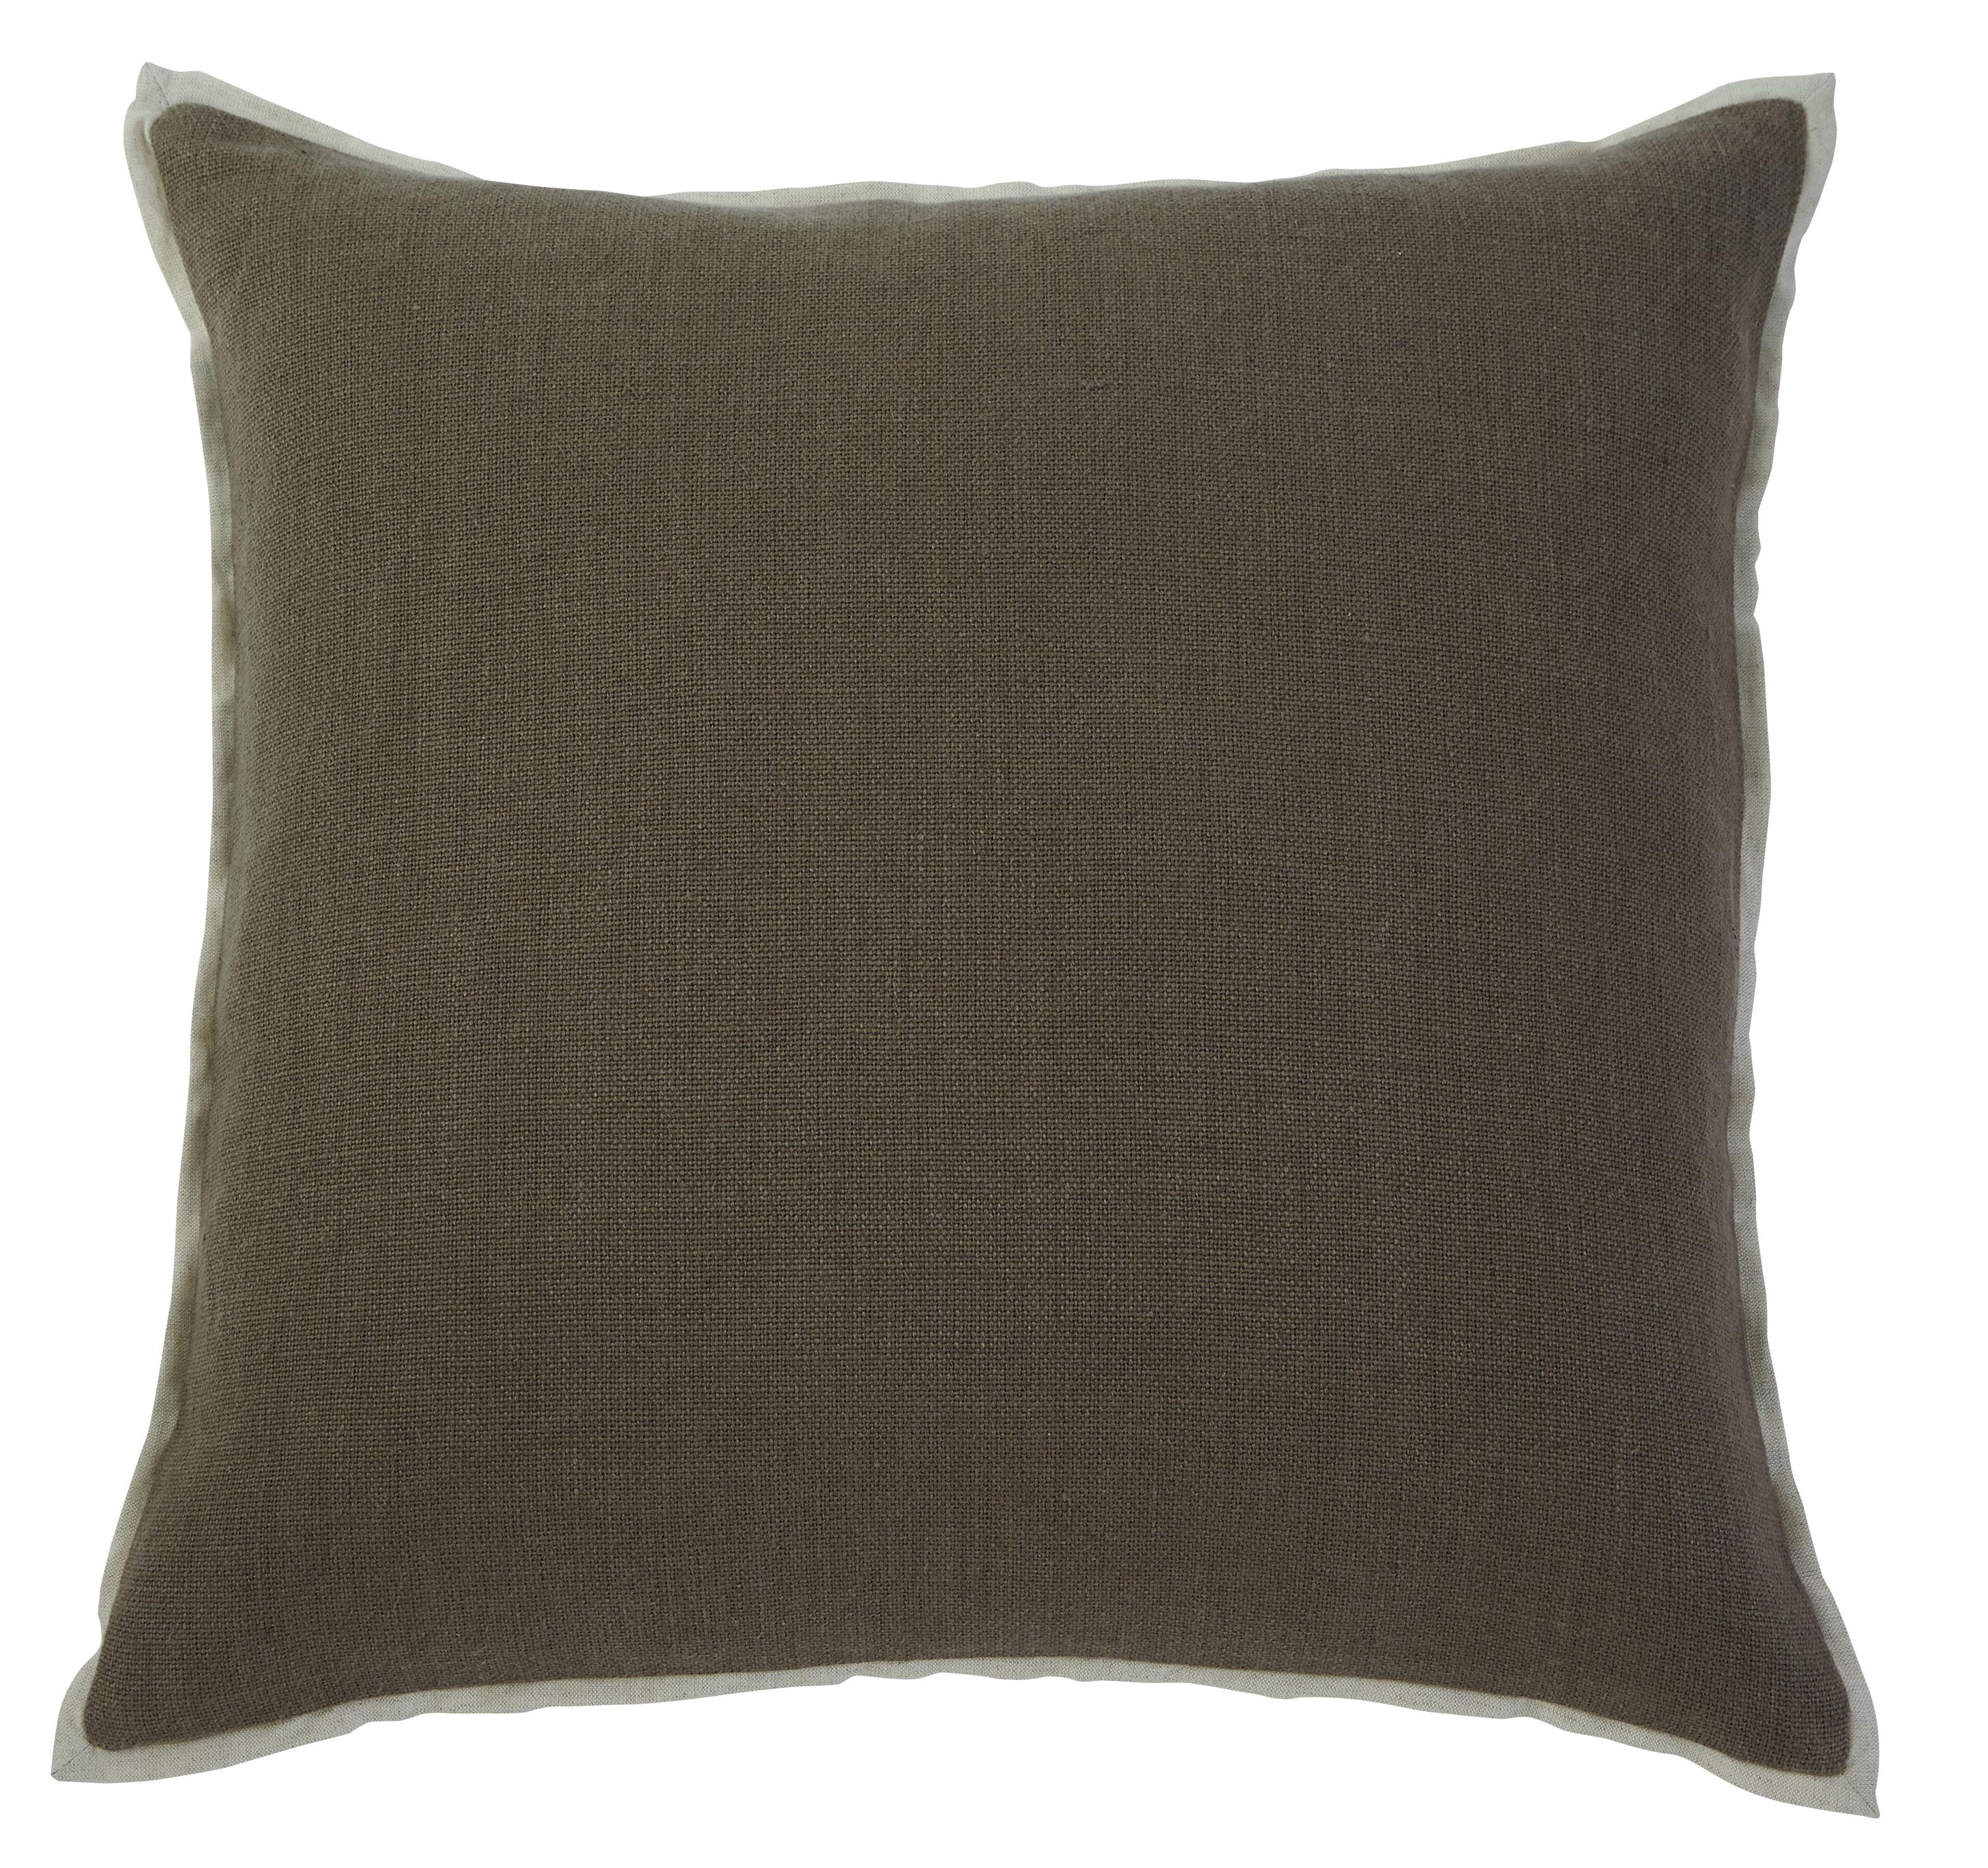 Signature Design by Ashley Pillows Solid - Gray Pillow Cover - Item Number: A1000341P